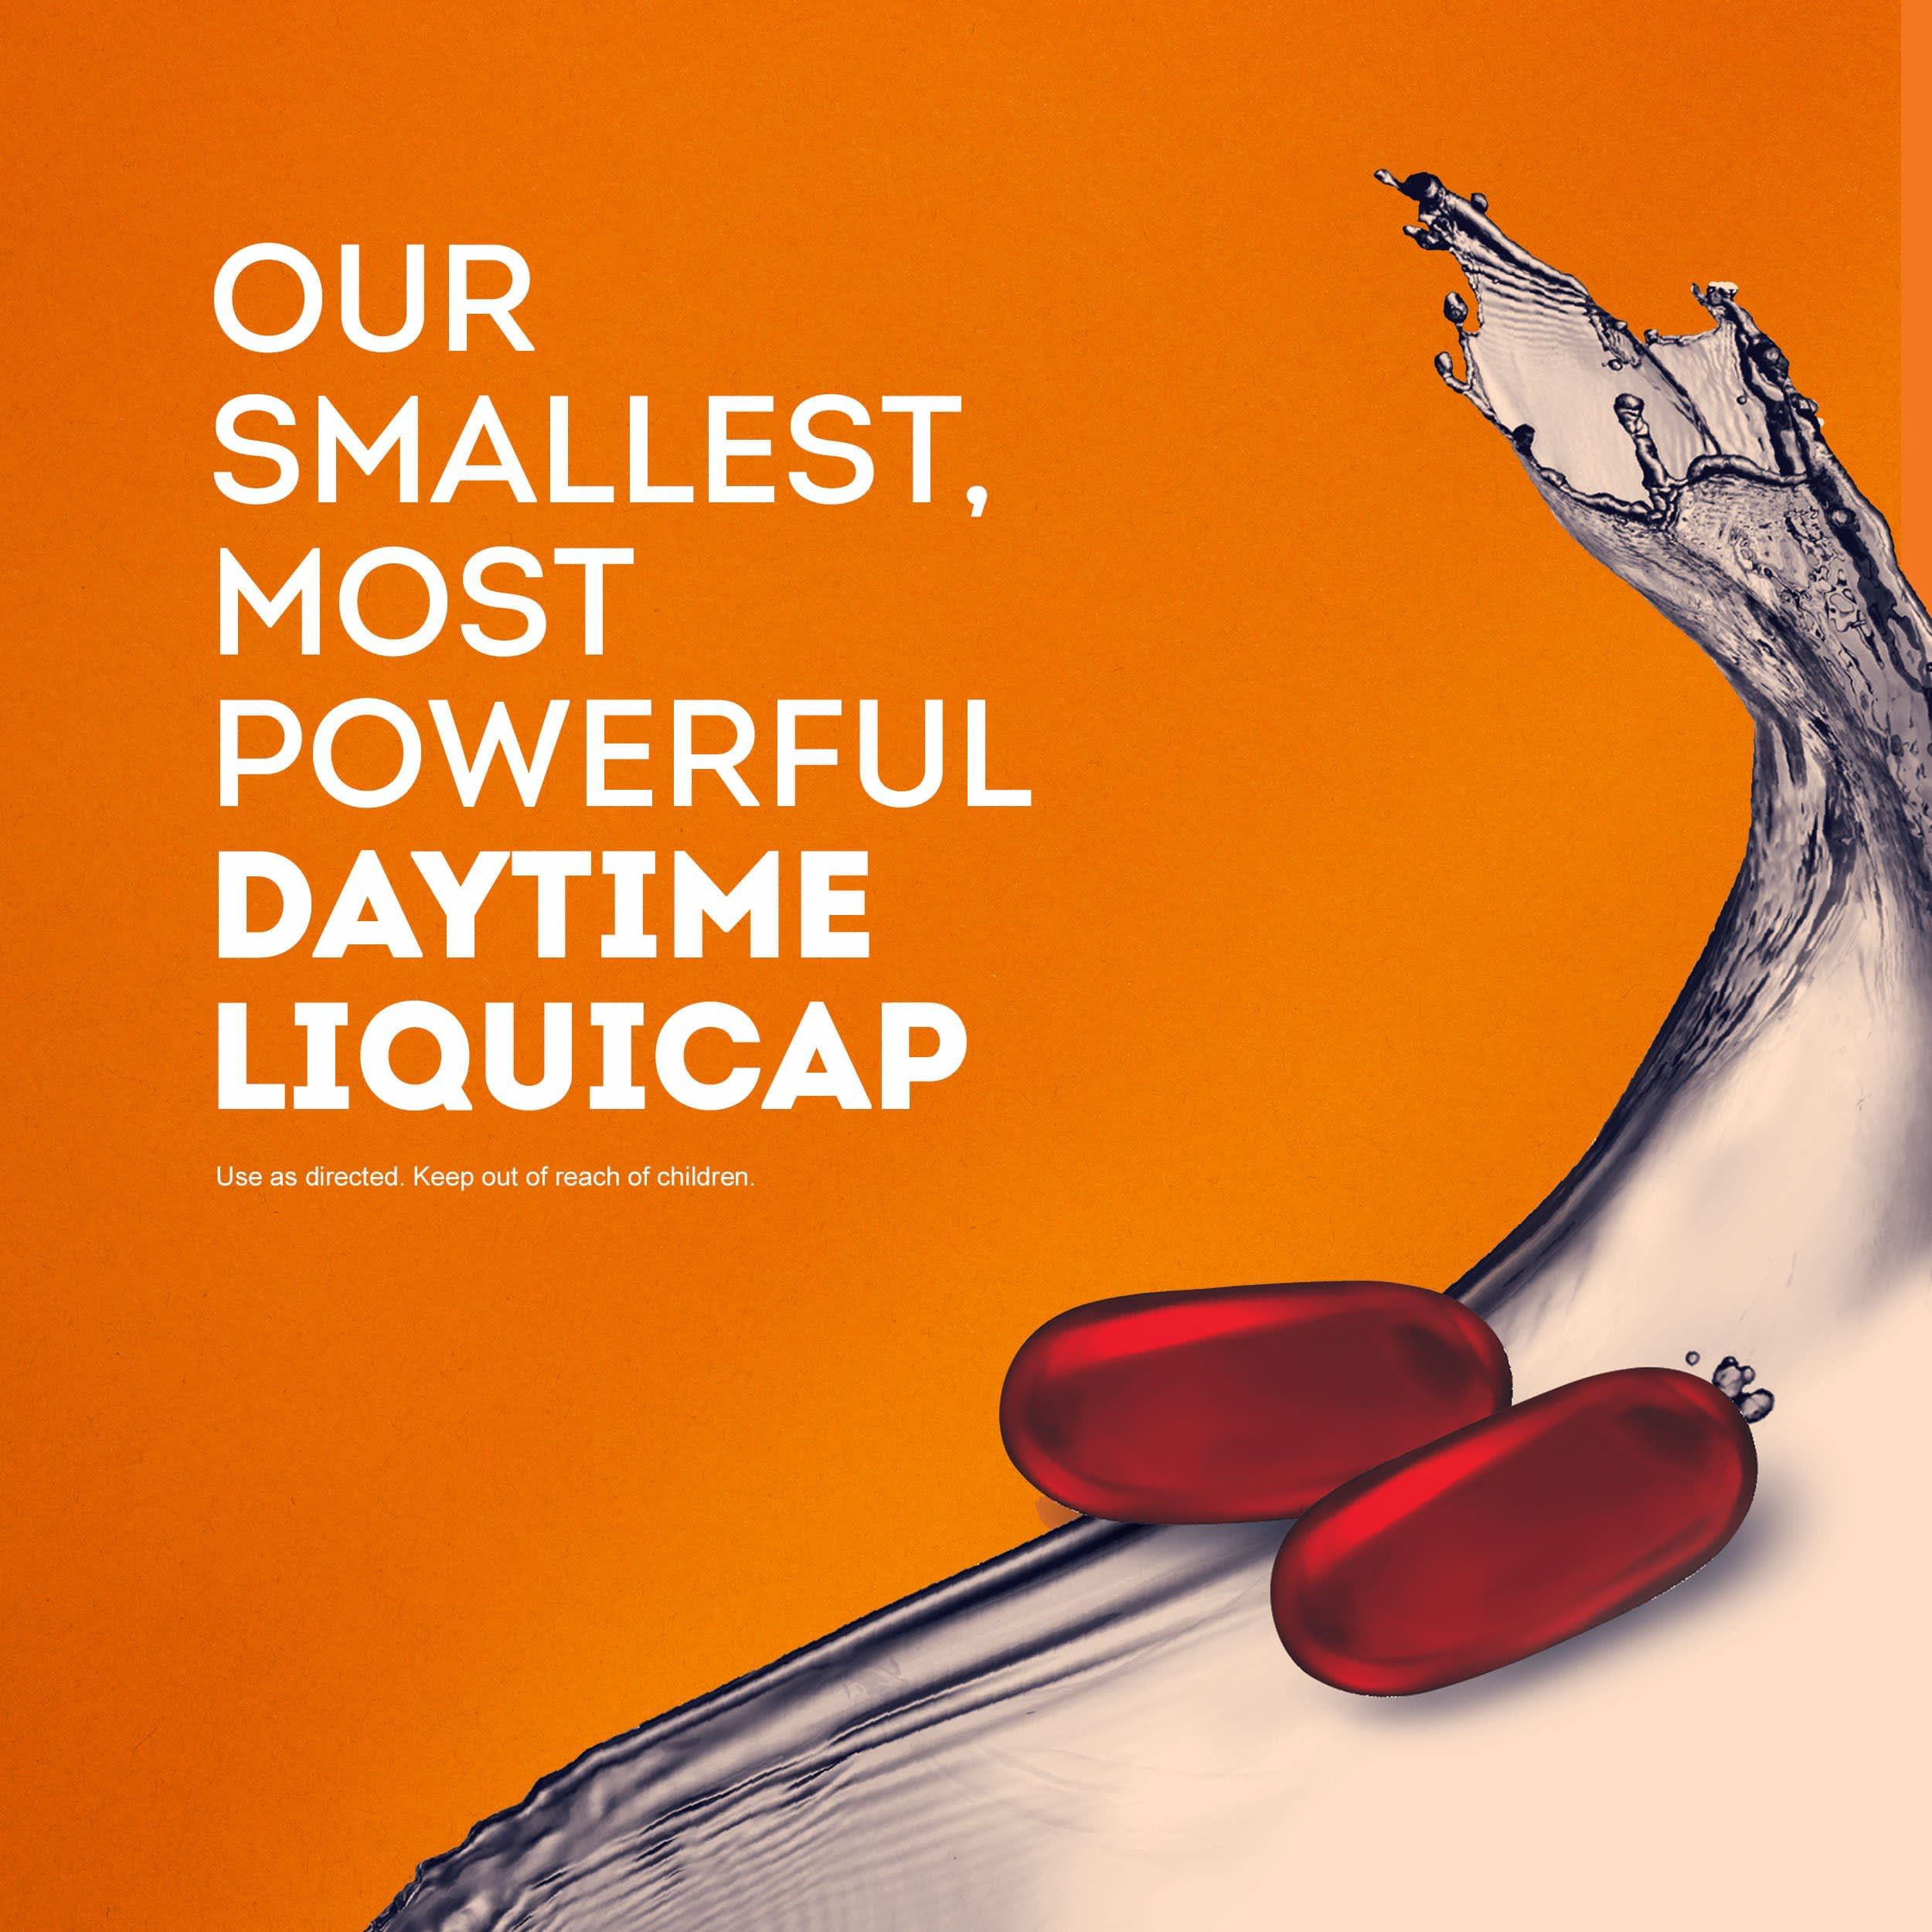 our-smallest-most-powerful-daytime-liquicap-dayquil-severe-cold-and-flu